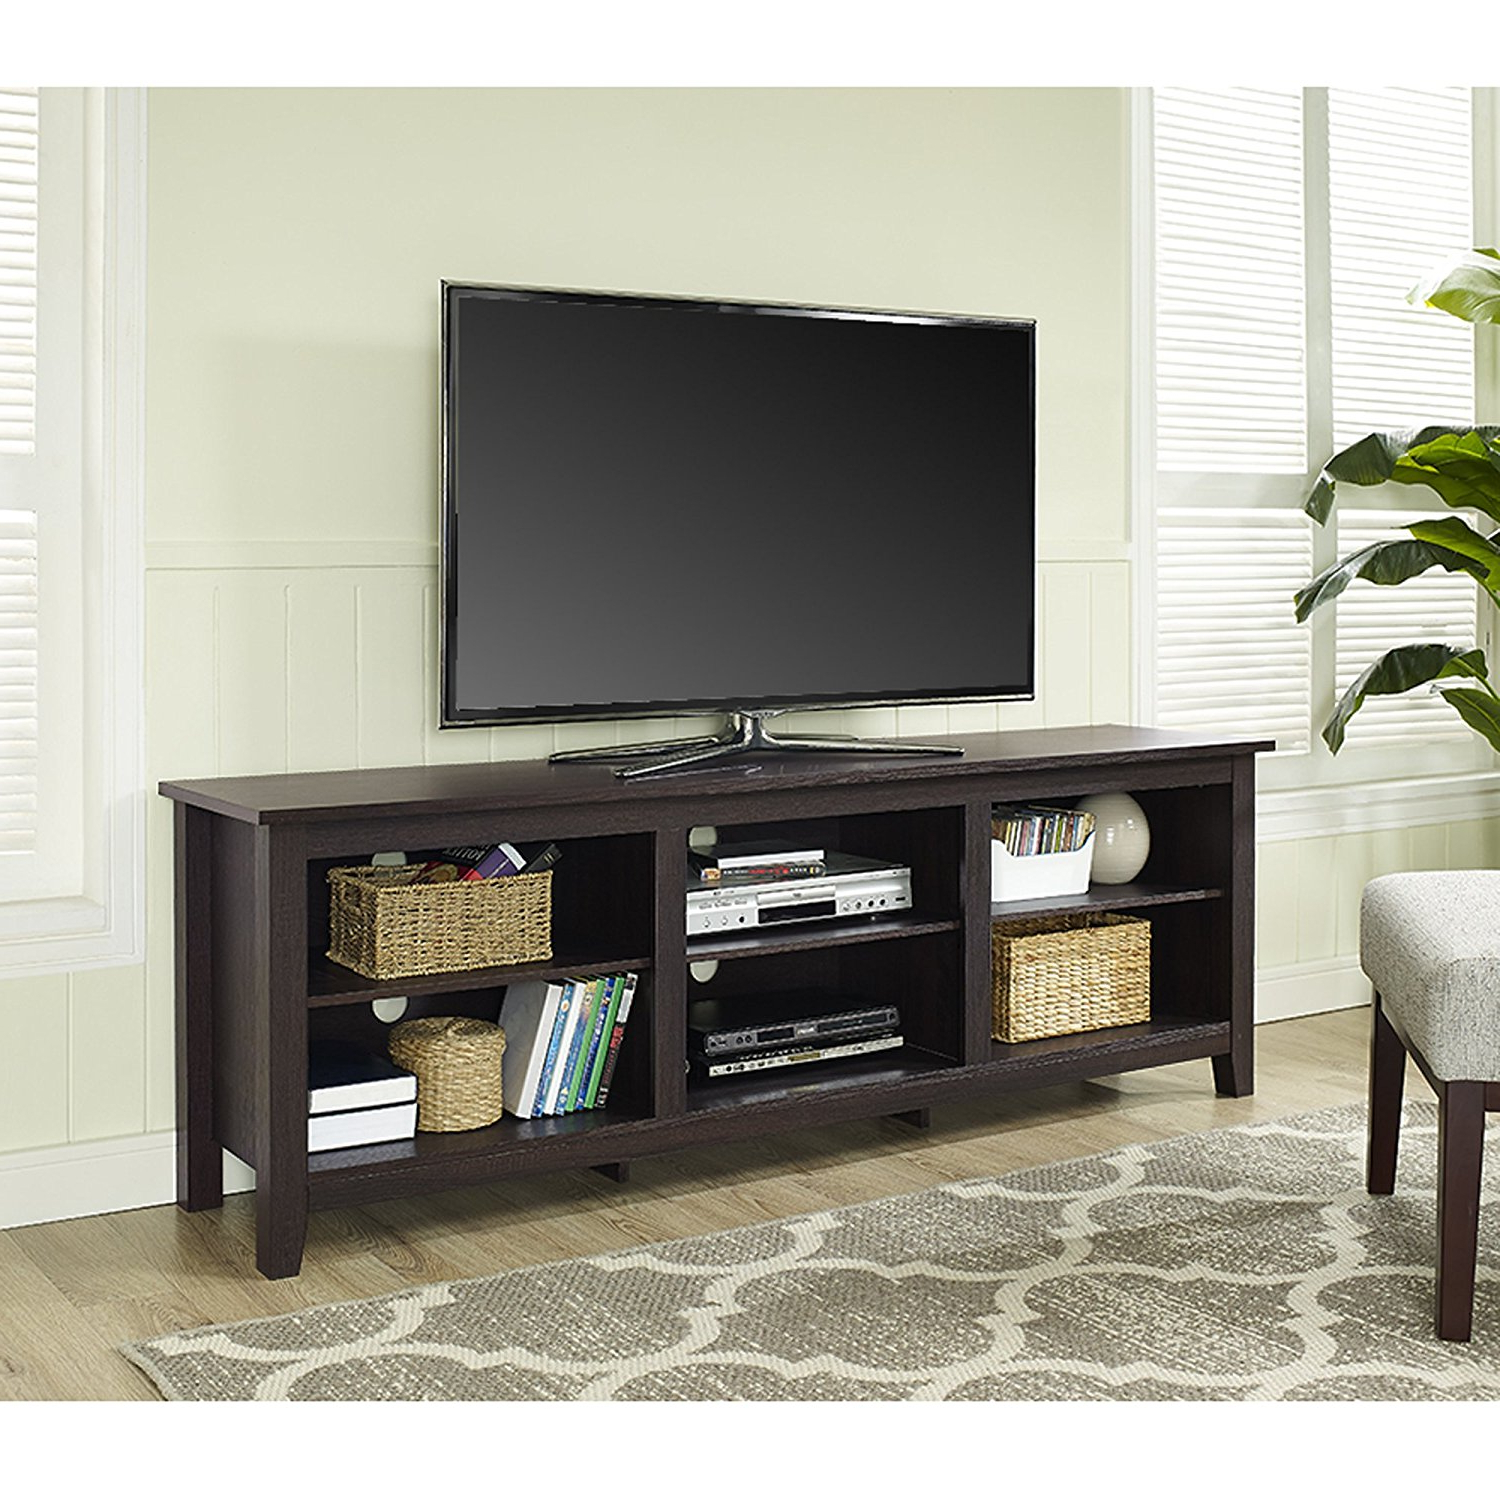 39 Inch Tv Stand 30 Wide Media Console High Corner 42 Walmart 36 Intended For Fashionable Expresso Tv Stands (Gallery 8 of 20)